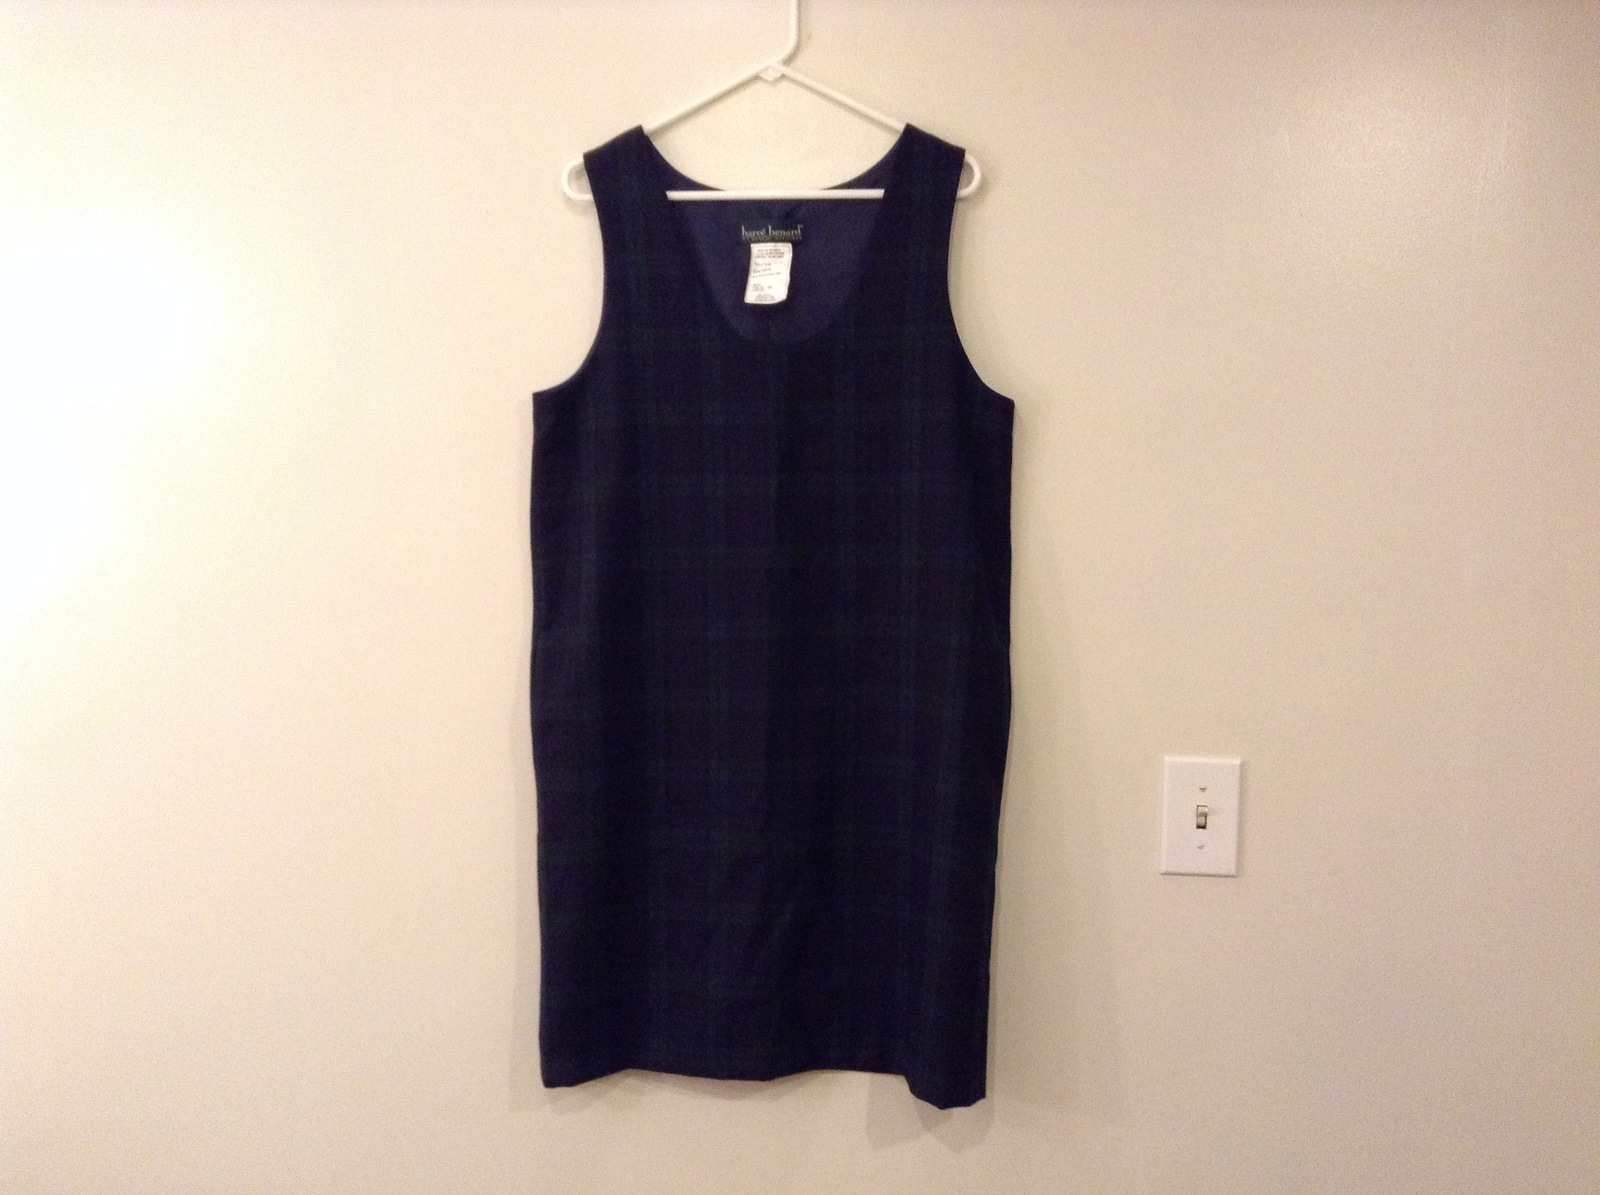 Harve Benard by Benard Holtzman Sleeveless Navy Blue Plaid Wool Dress, size 10